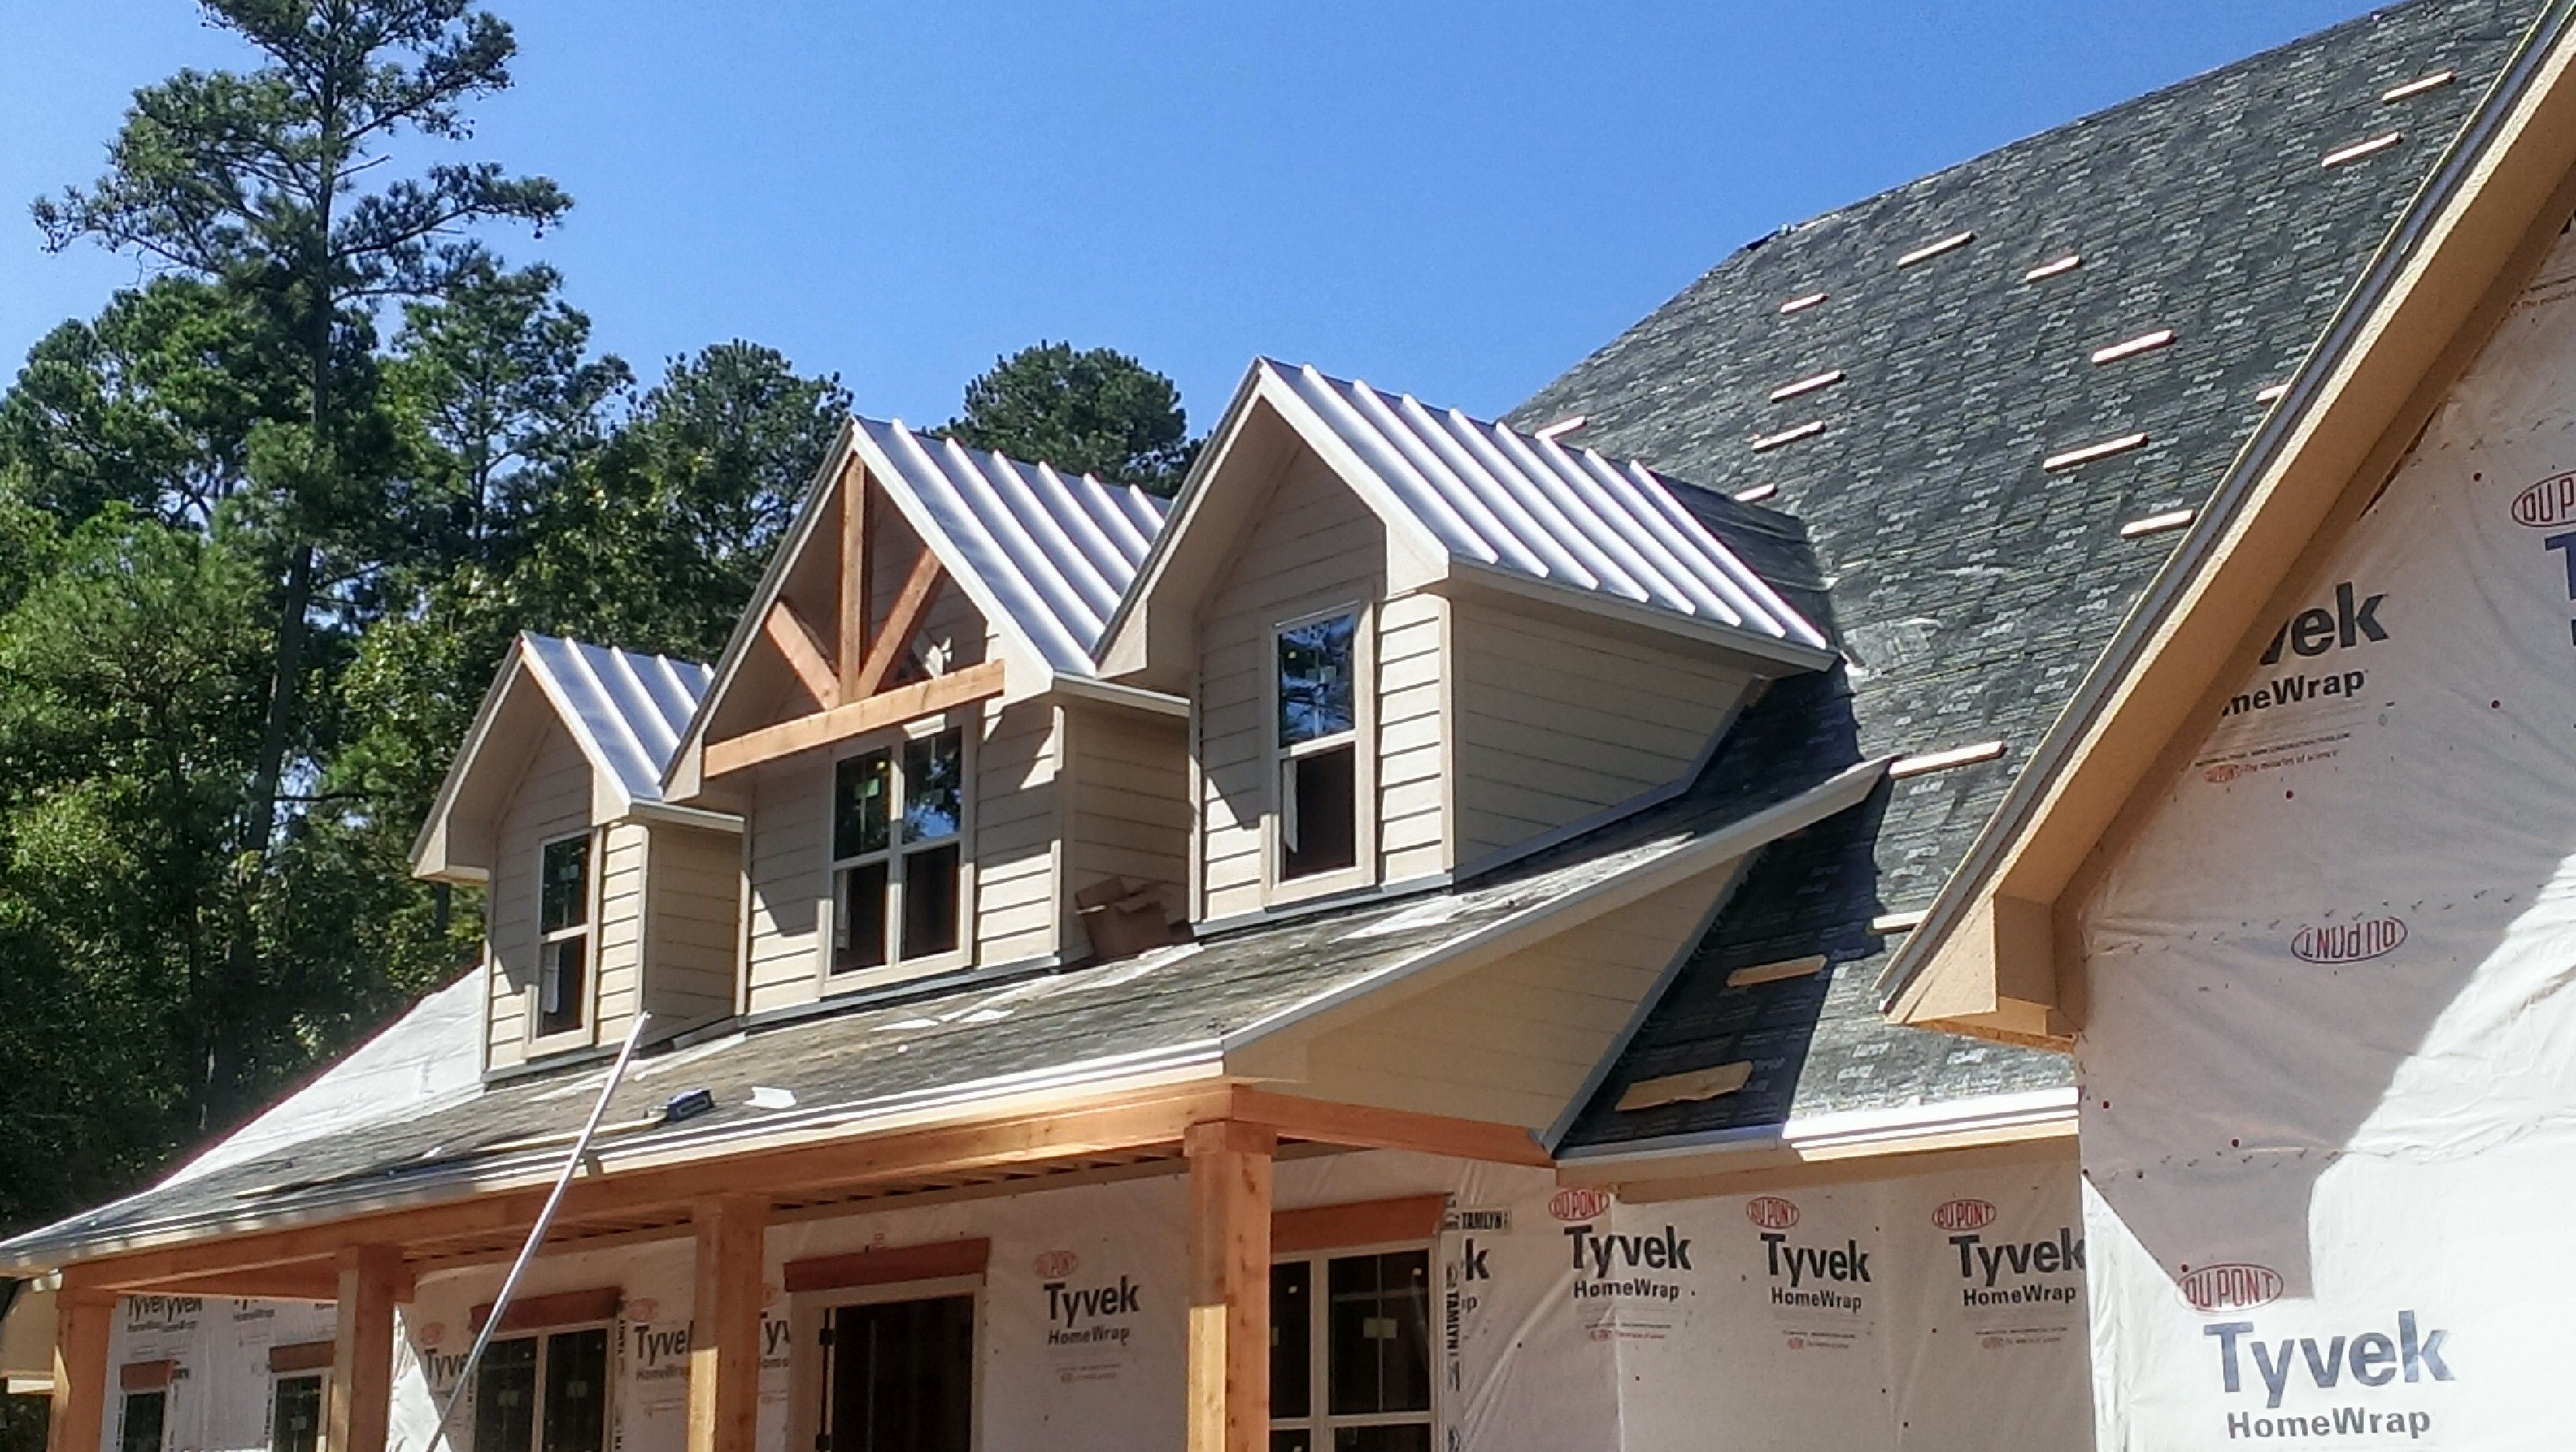 Standing Seam Metal Roof On New Home In Magnolia Texas Metal Roof Standing Seam Metal Roof Standing Seam